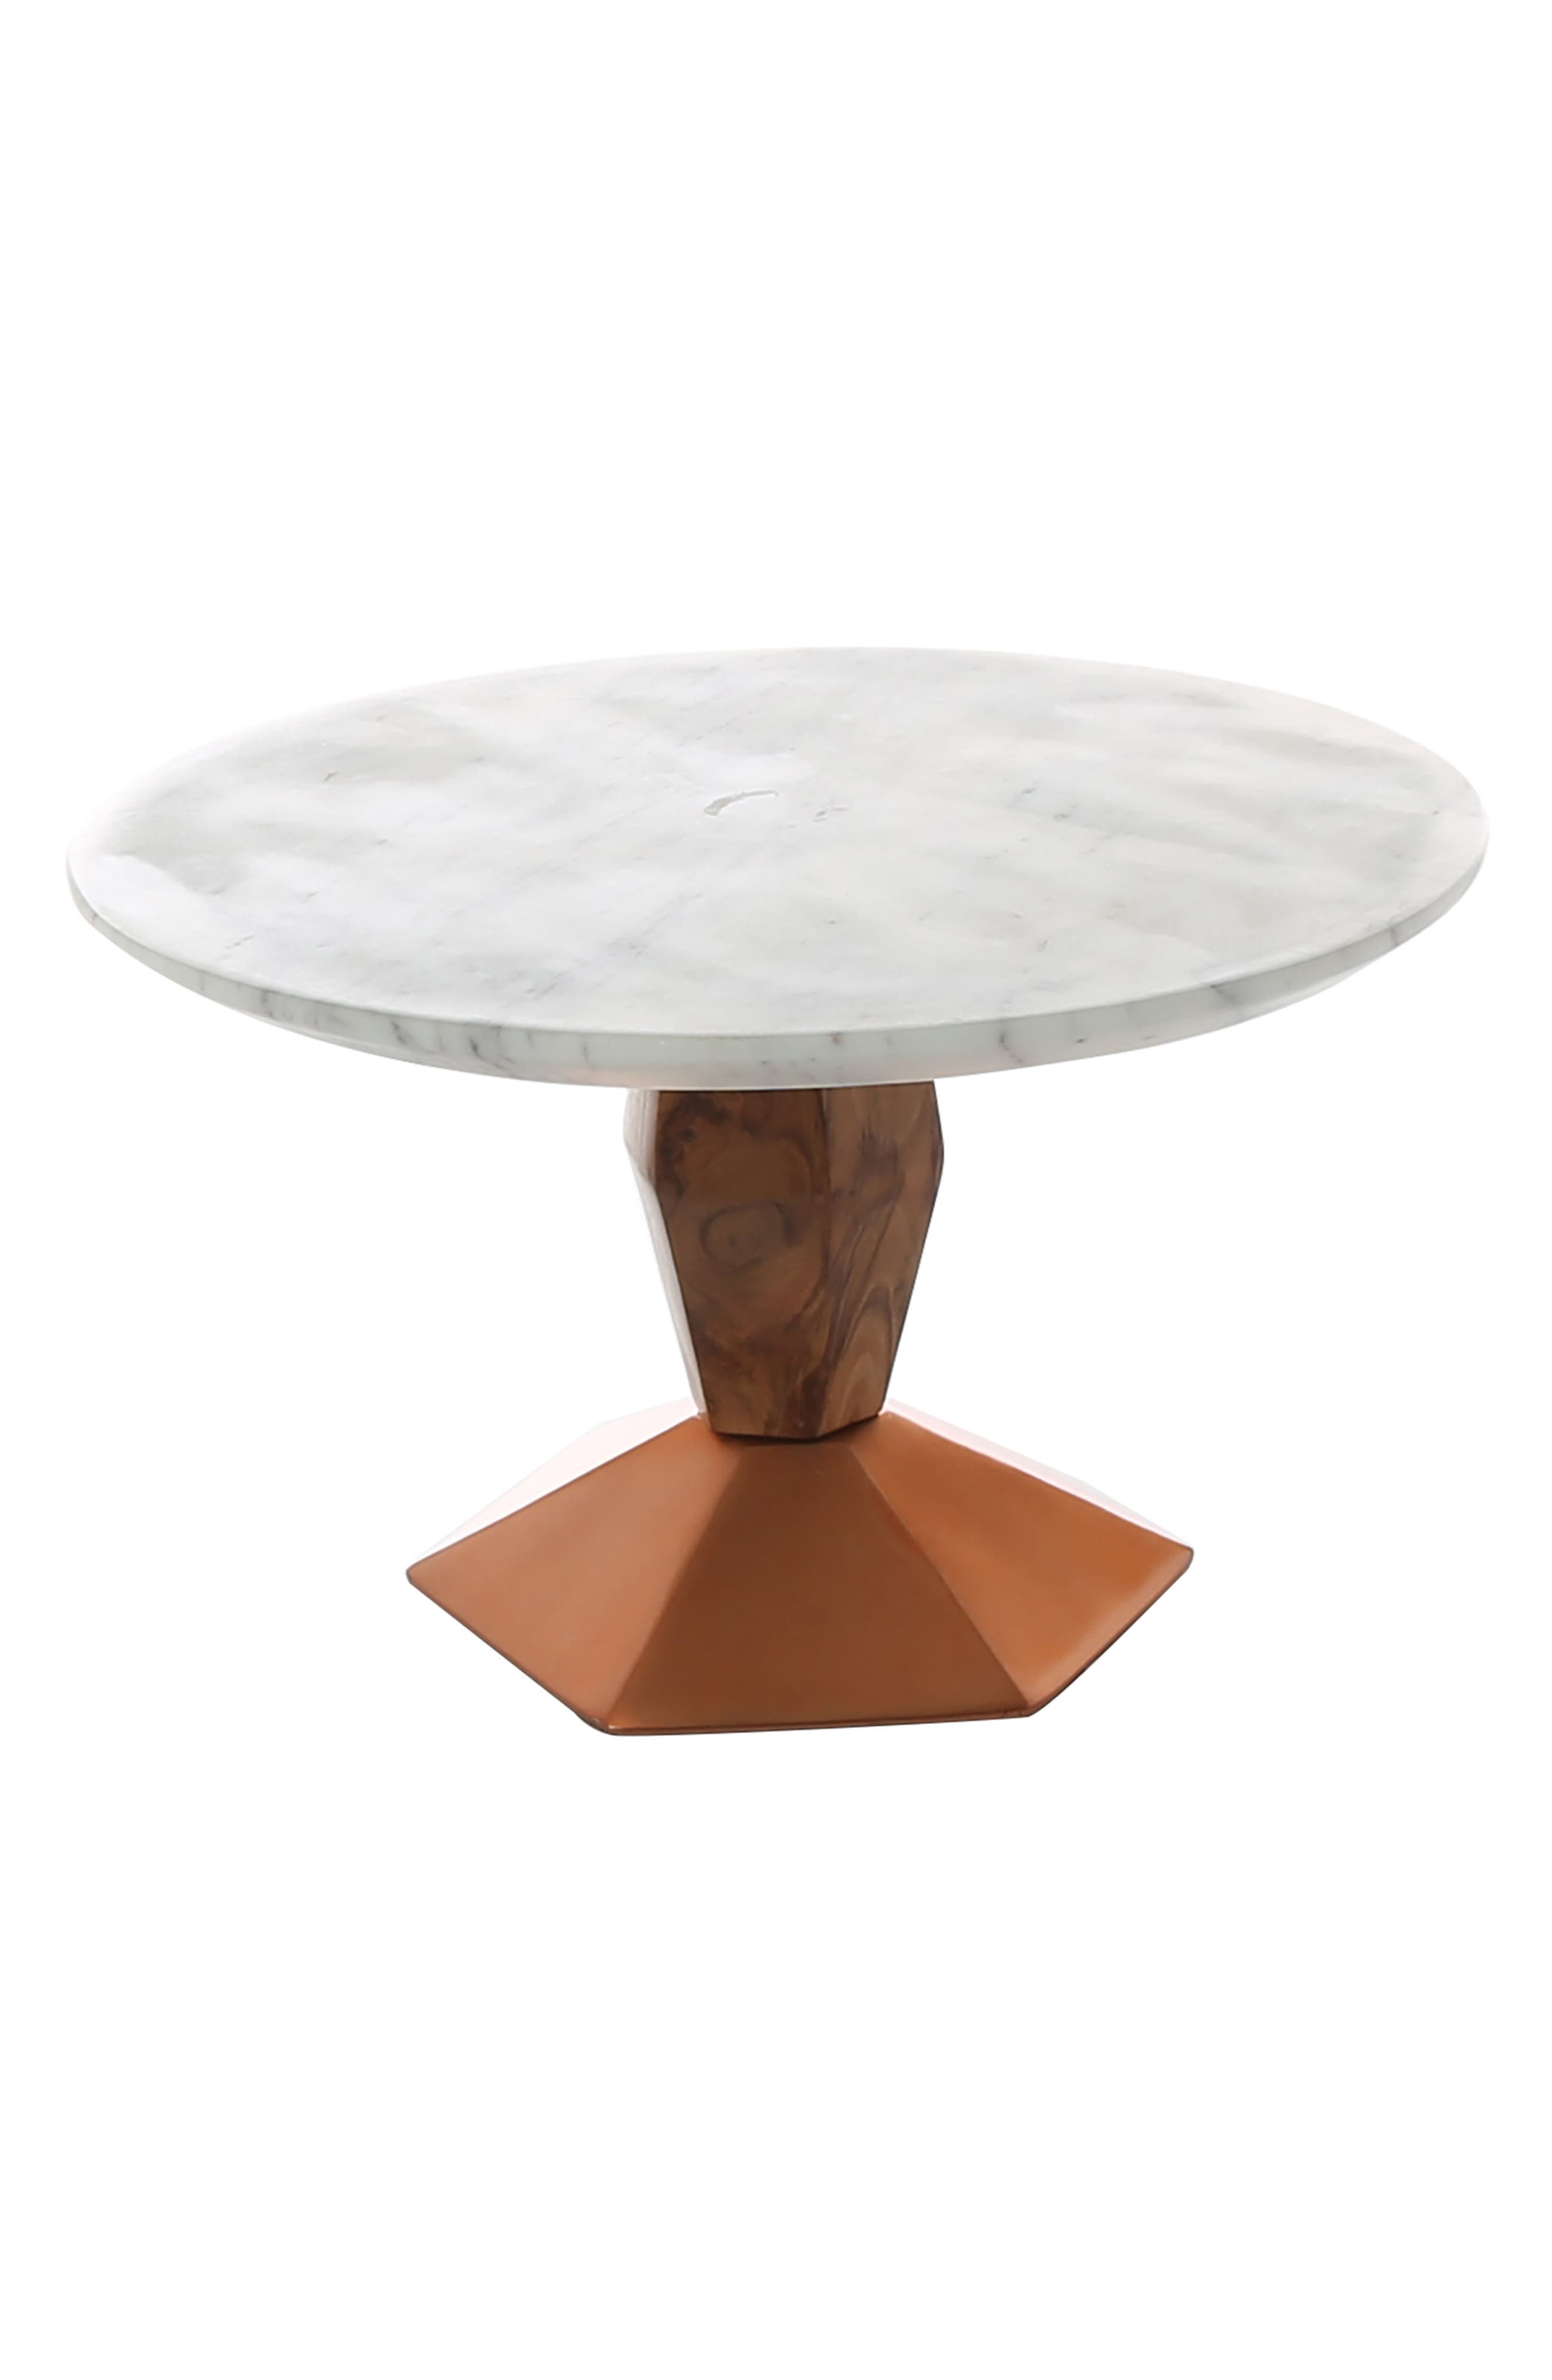 Marble & Wood Cake Stand with Copper Base,                         Main,                         color, Grey/ Copper